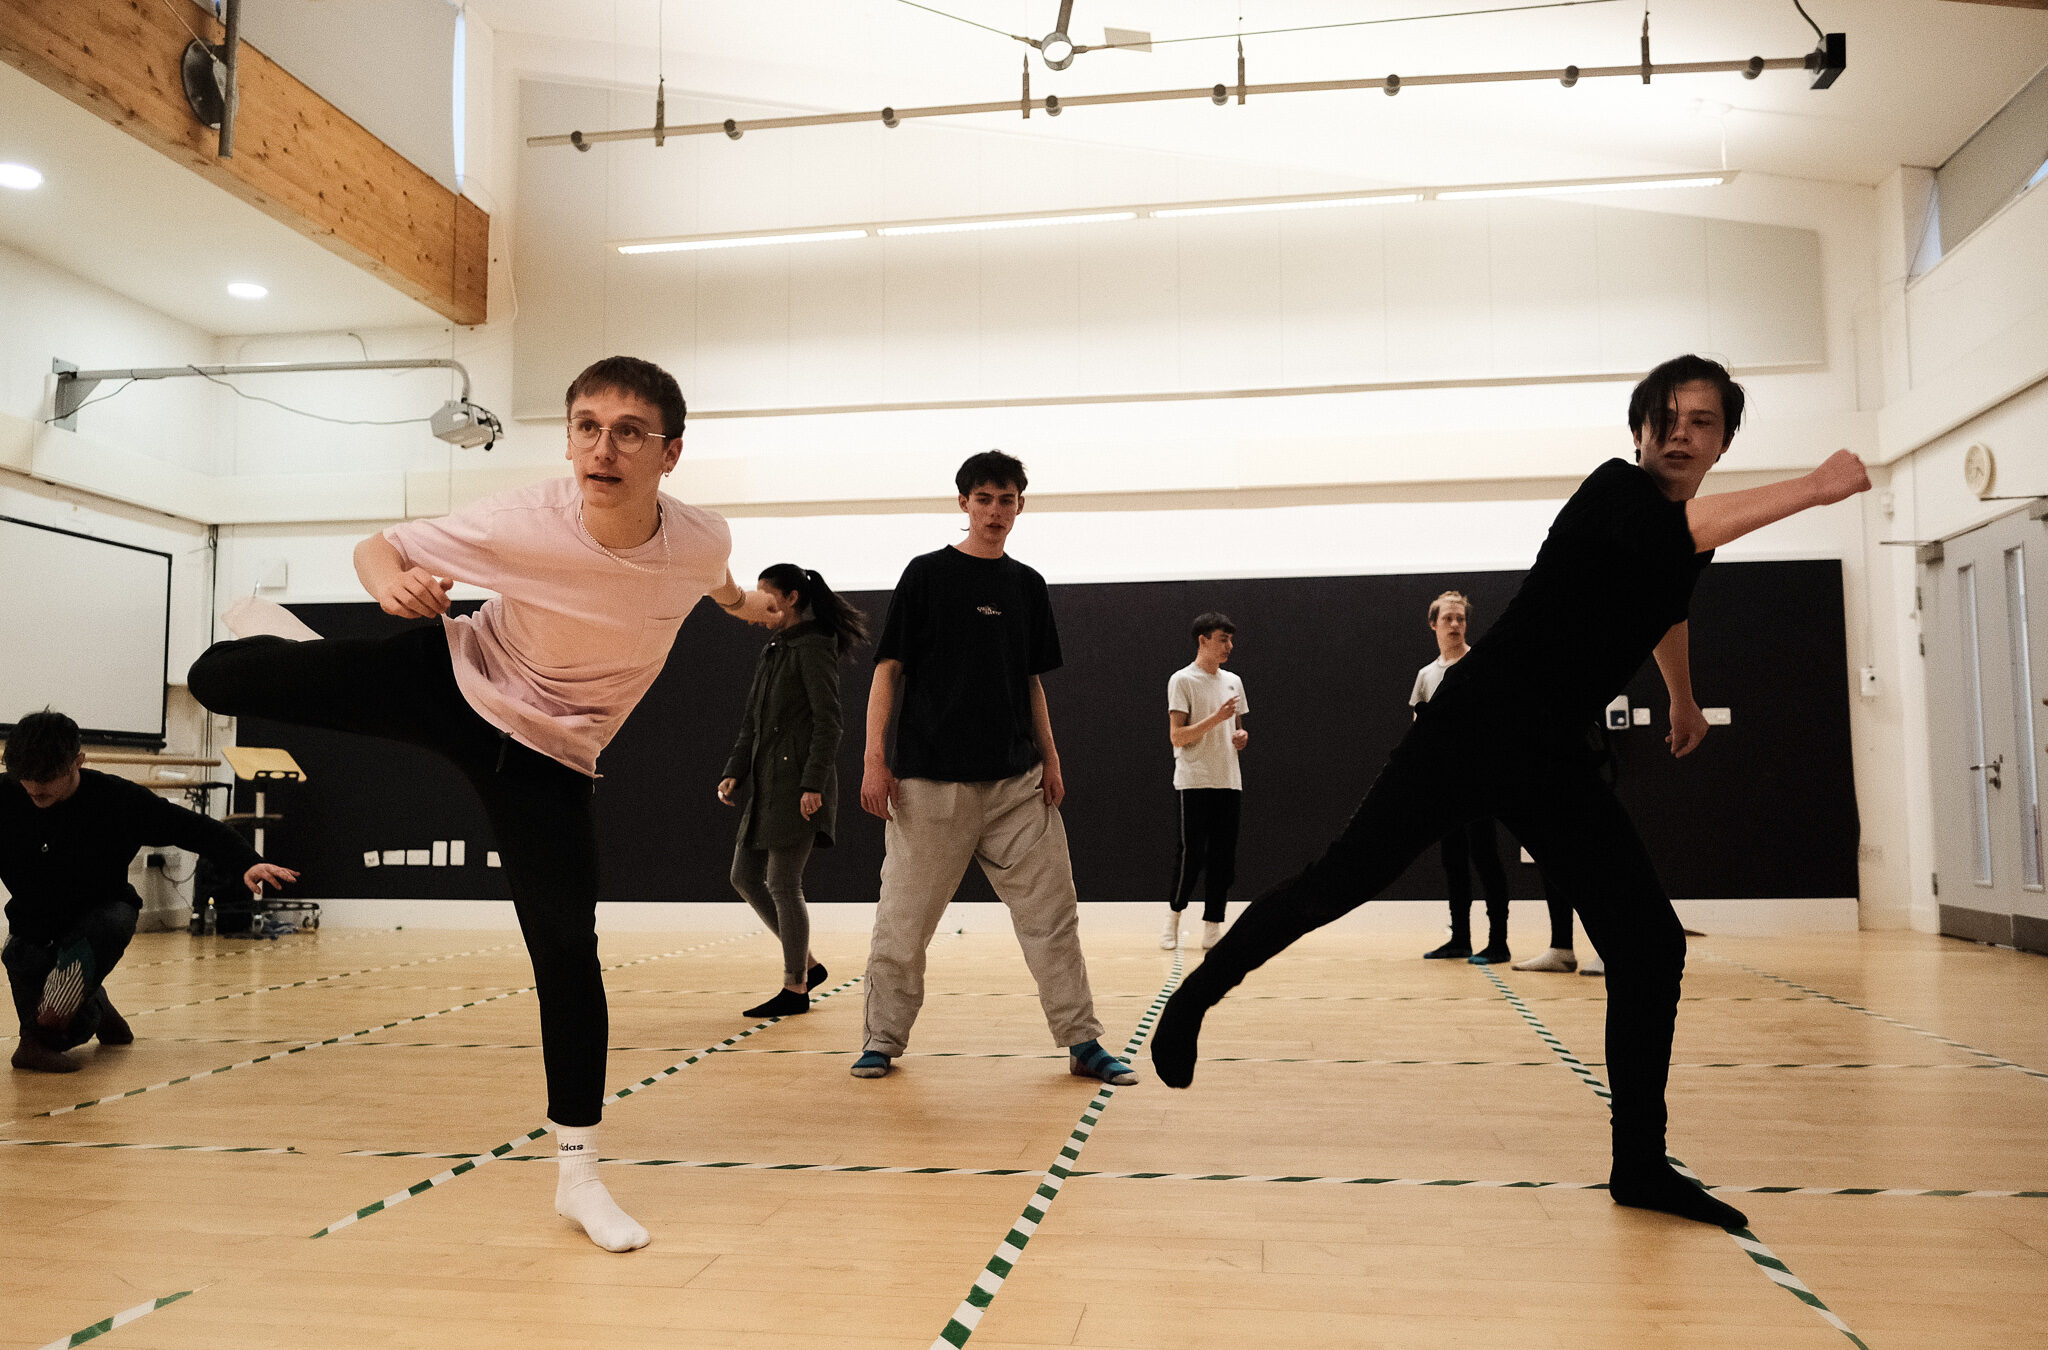 Young male dancers in a dance studio